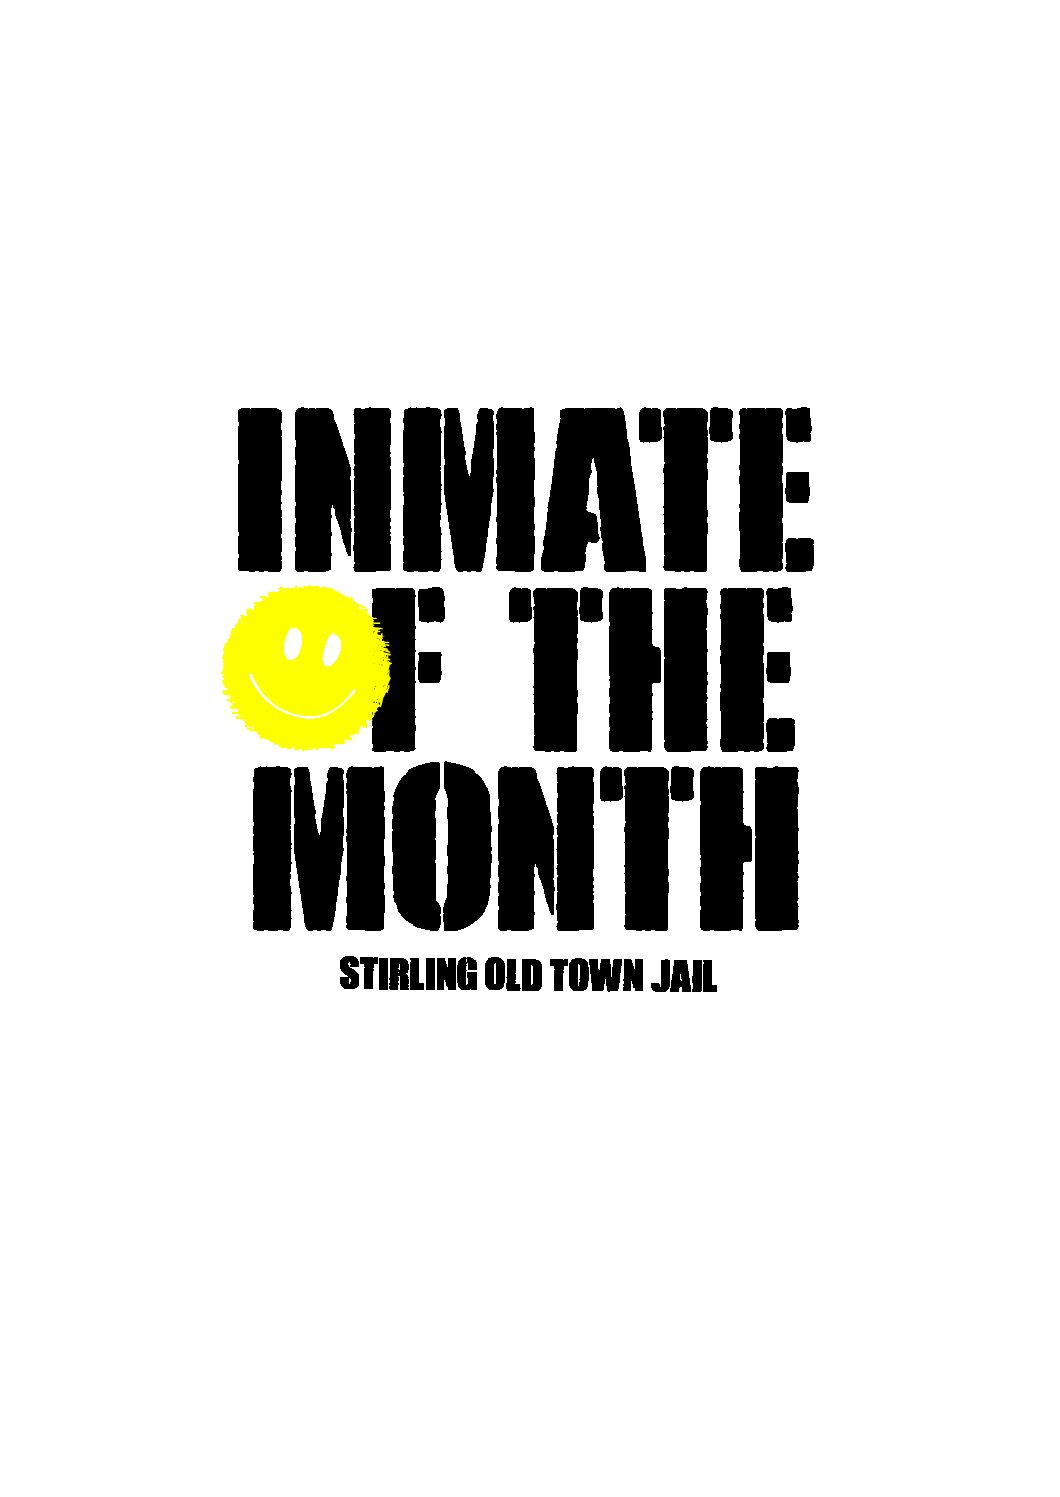 https://oldtownjail.co.uk/wp-content/uploads/2021/03/Inmate-of-The-Month-Tee-pdf.jpg